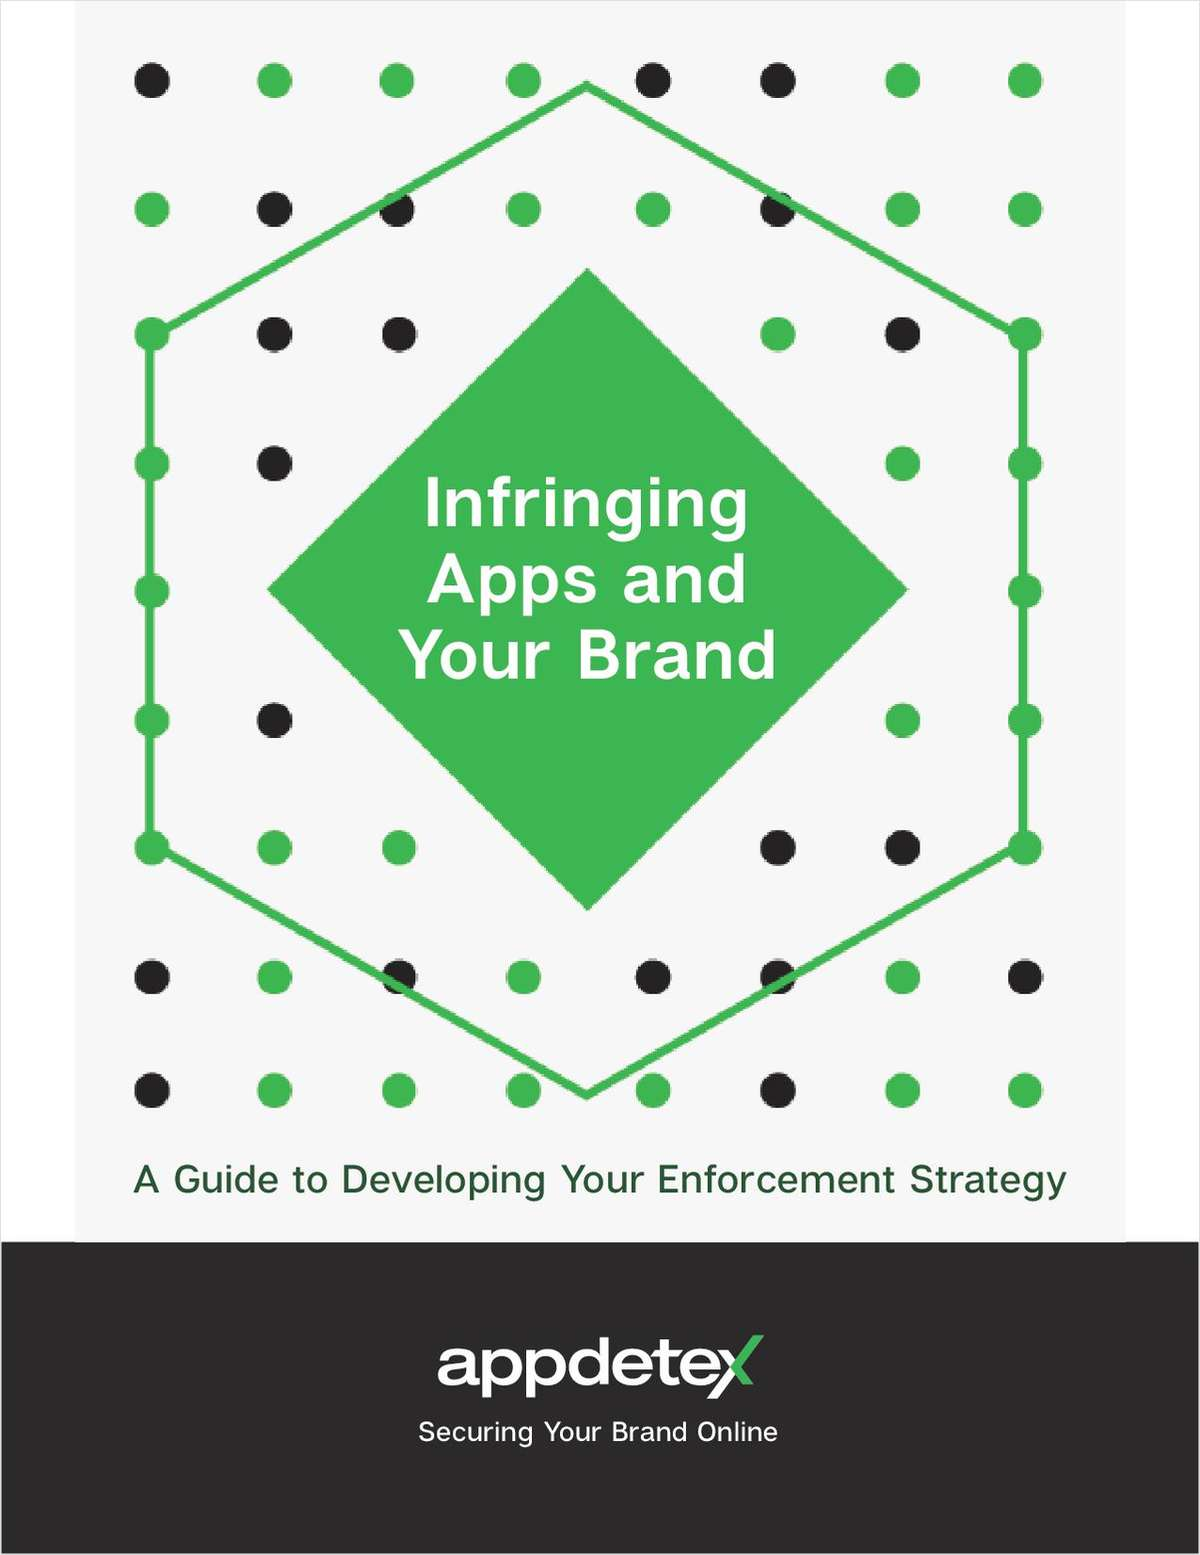 Infringing Apps and Your Brand: A Guide to Developing Your Enforcement Strategy